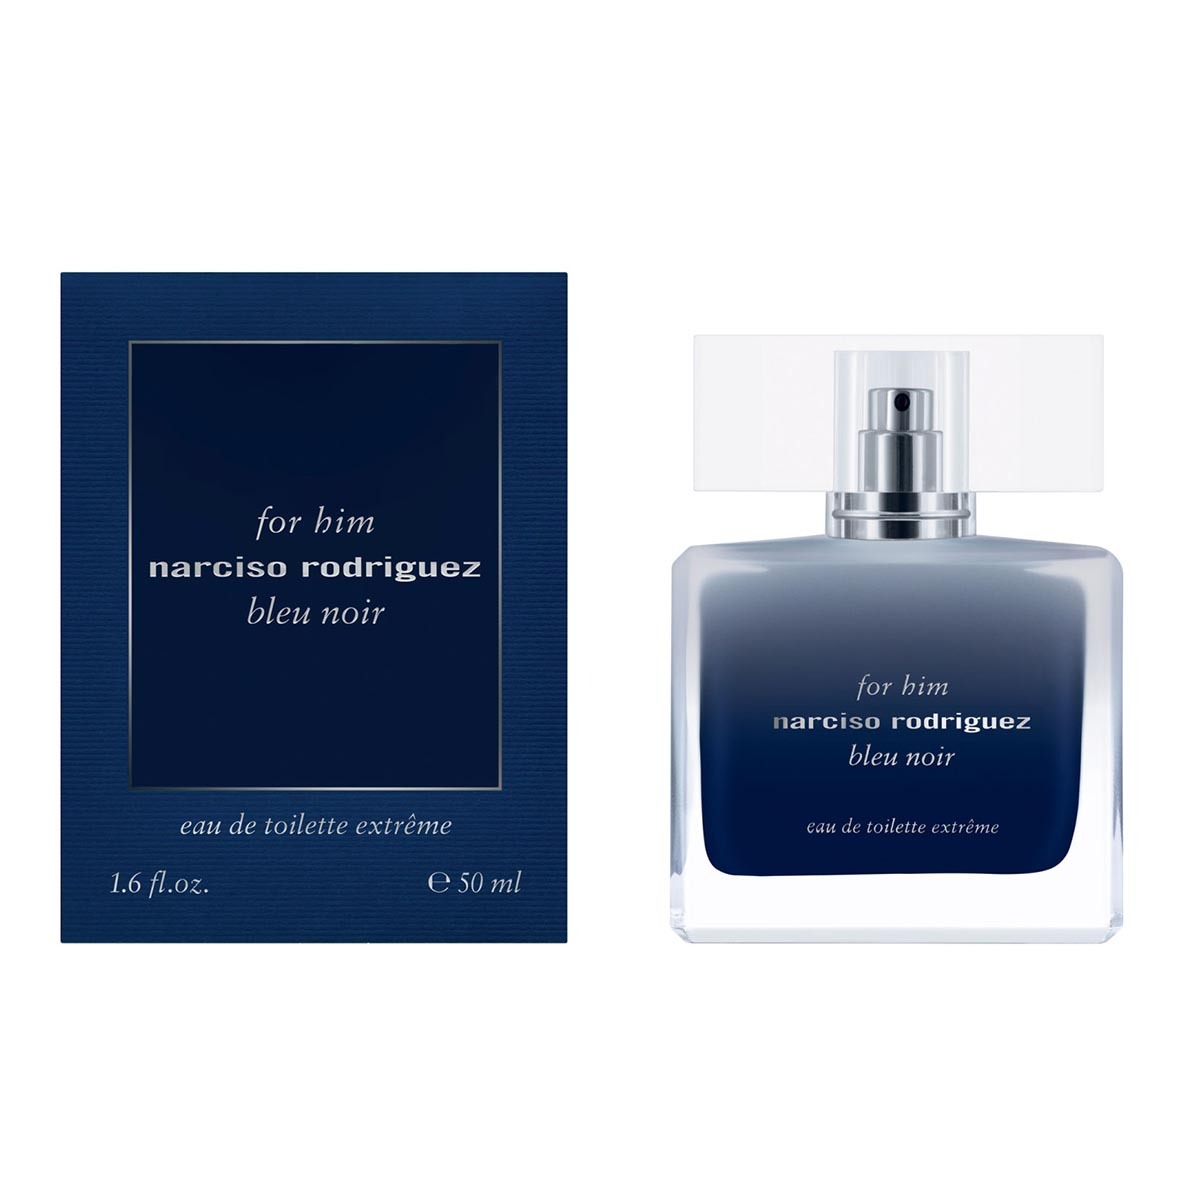 Narciso rodriguez for him bleu noir eau de toilette extreme 50ml vaporizador